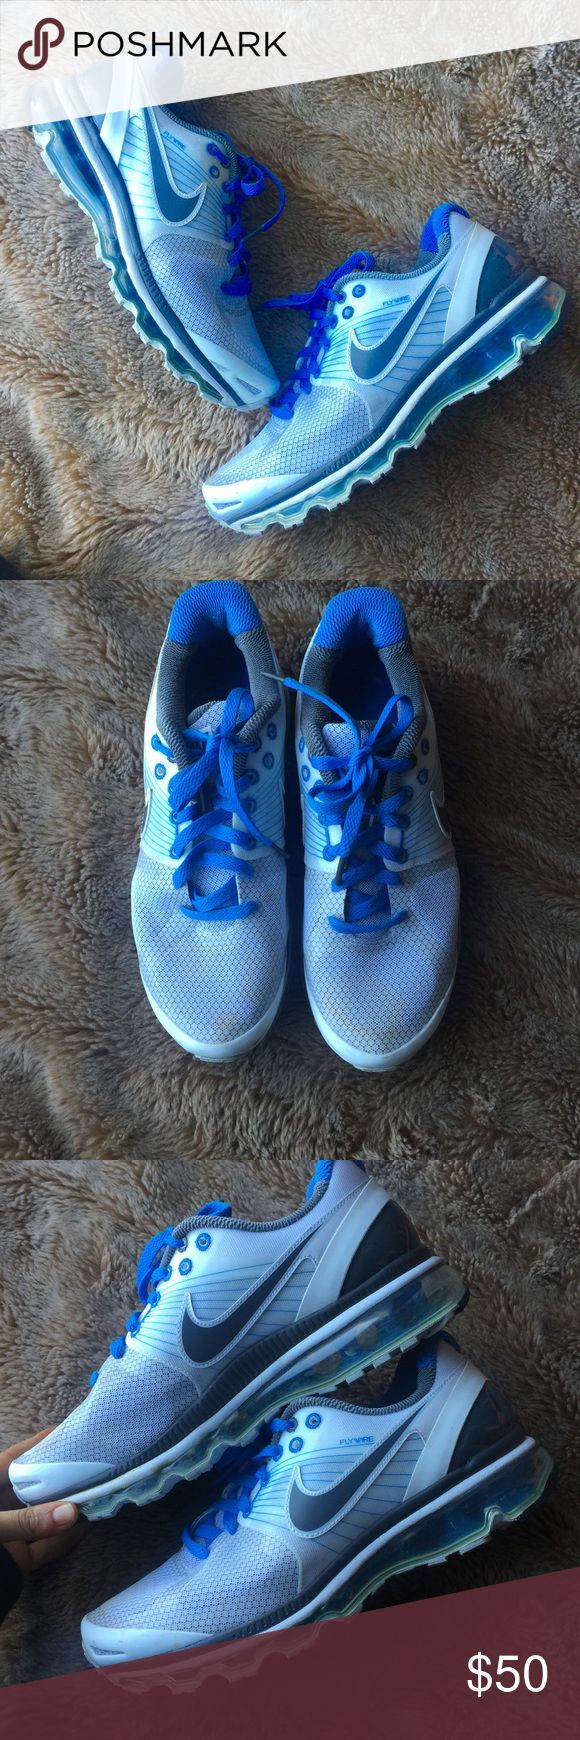 Woman's Nike Air Max 2010 size 9.5 Great sport wear shoes! Not recommended for workout or running more casual wear since they are a little heavy Nike Shoes Sneakers